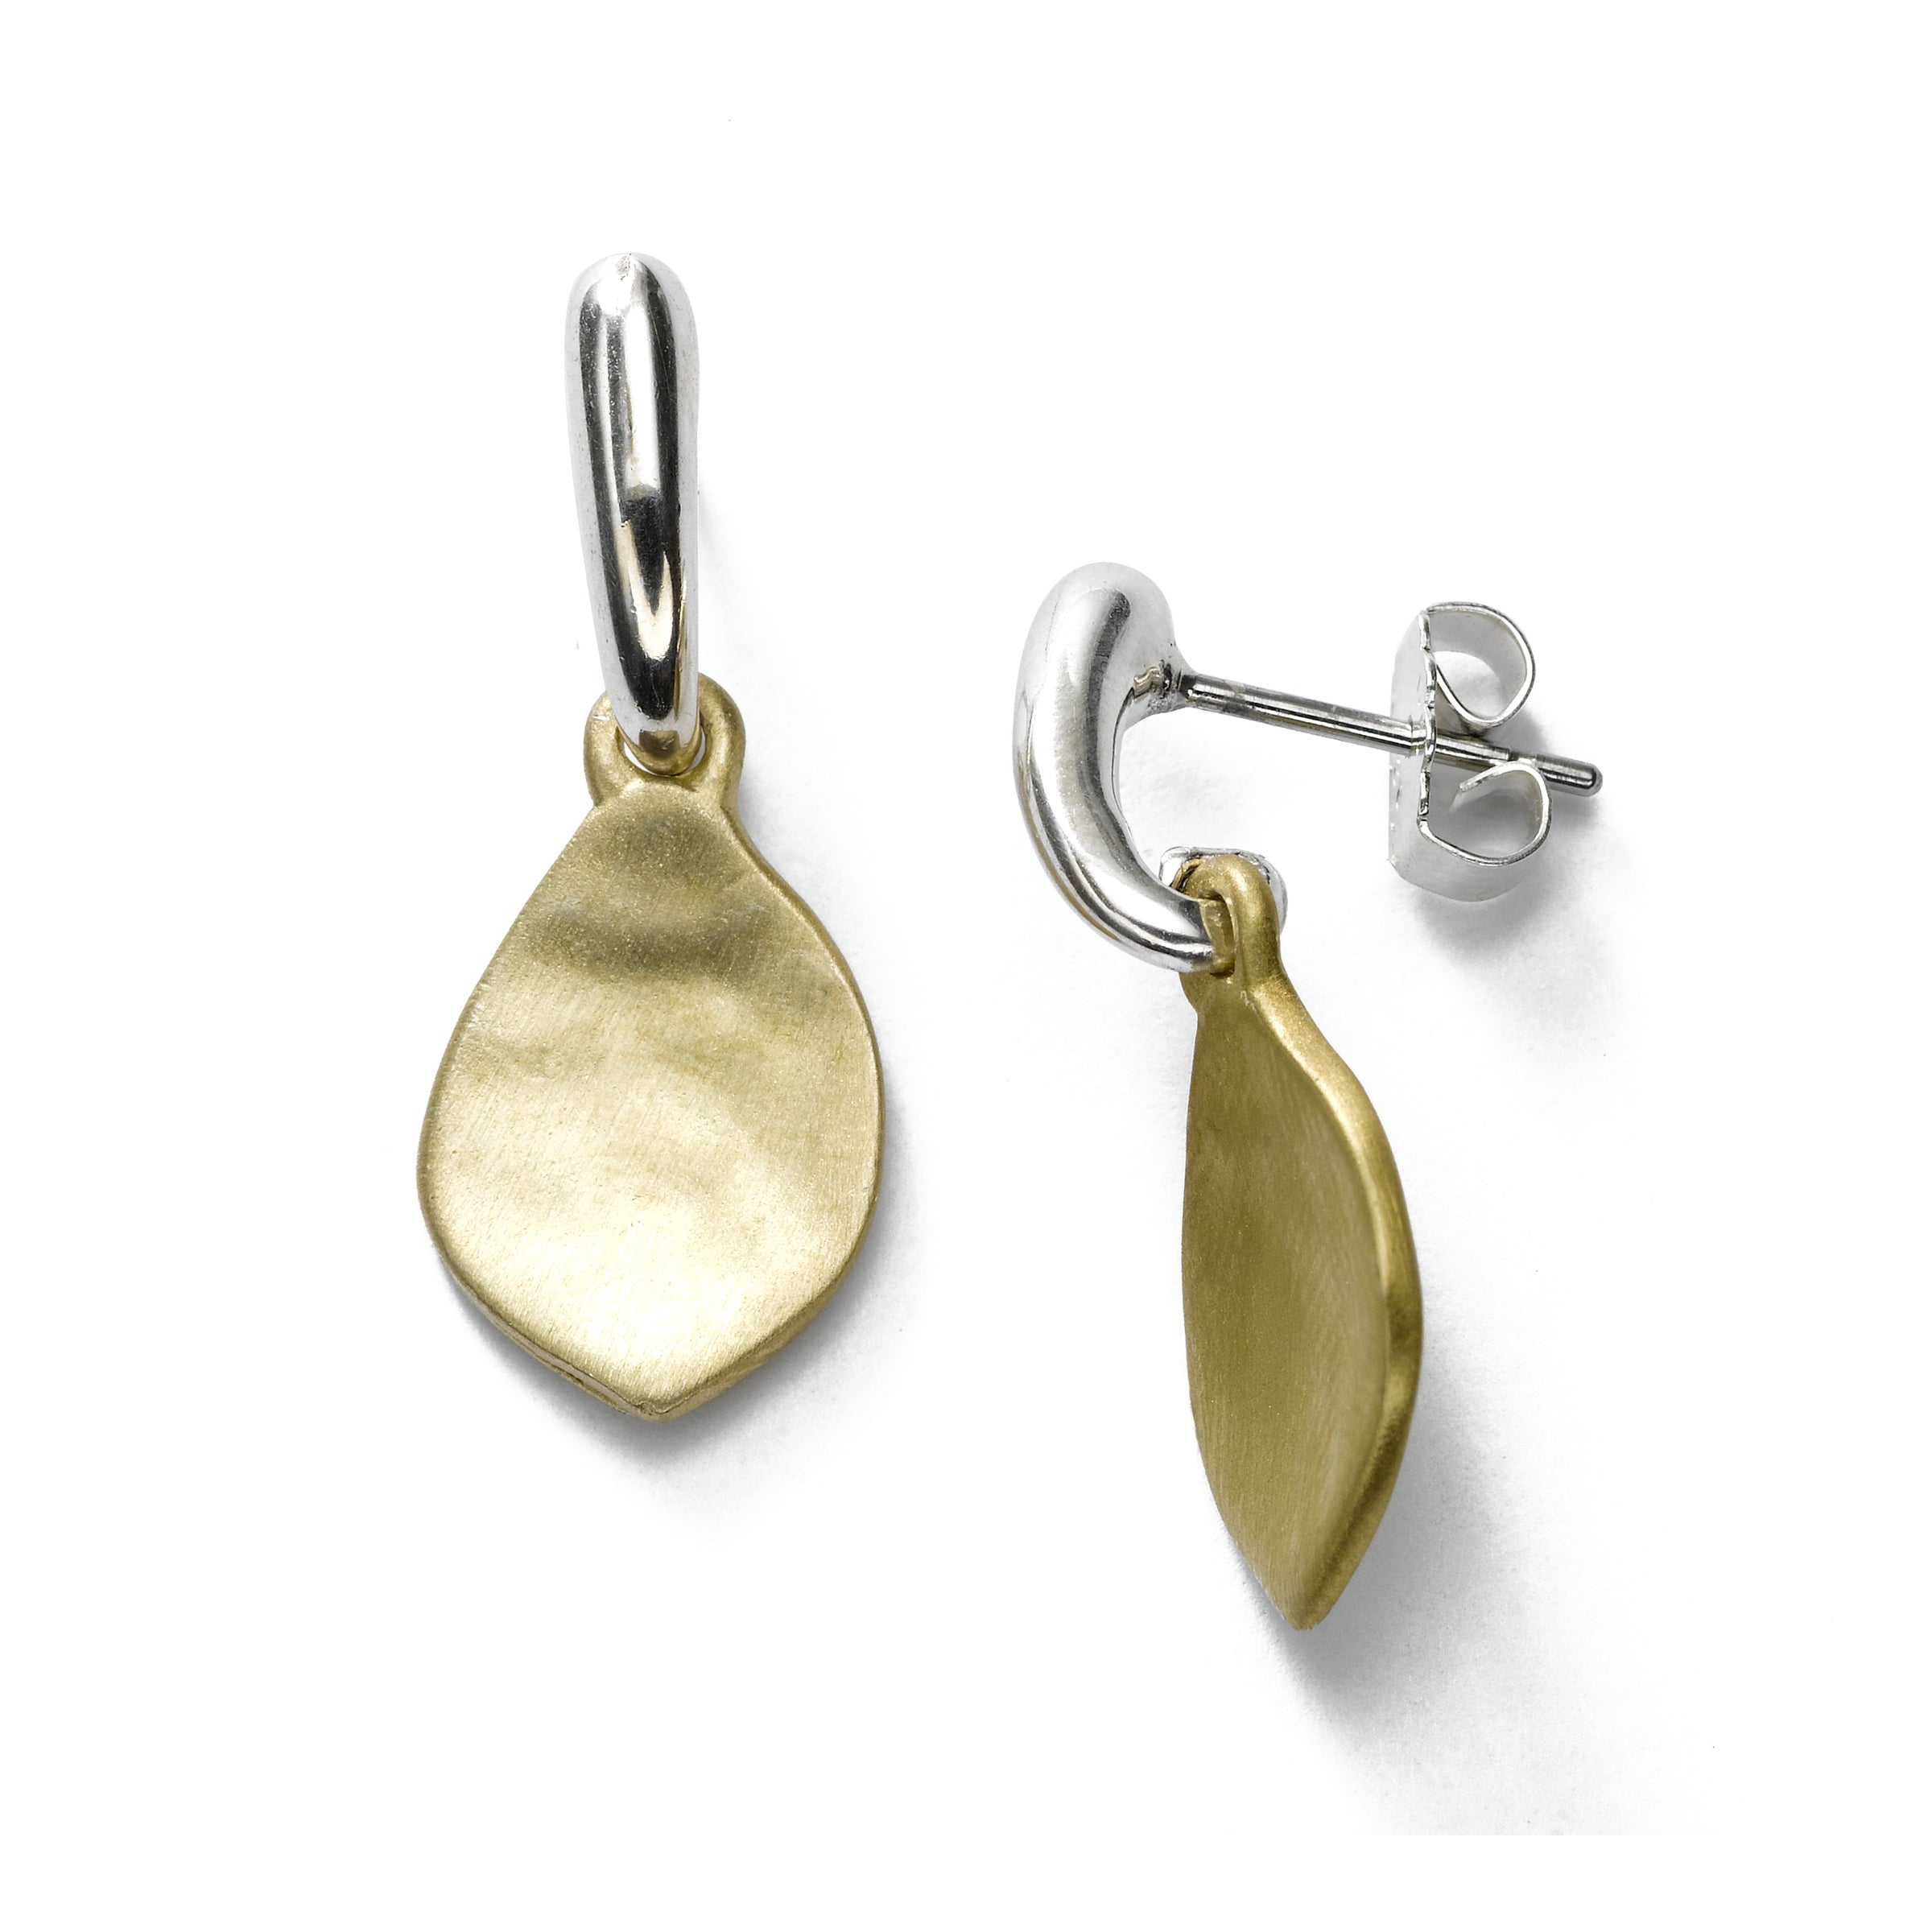 Satin Finish Leaf Dangle Earrings, Sterling Silver and Vermeil